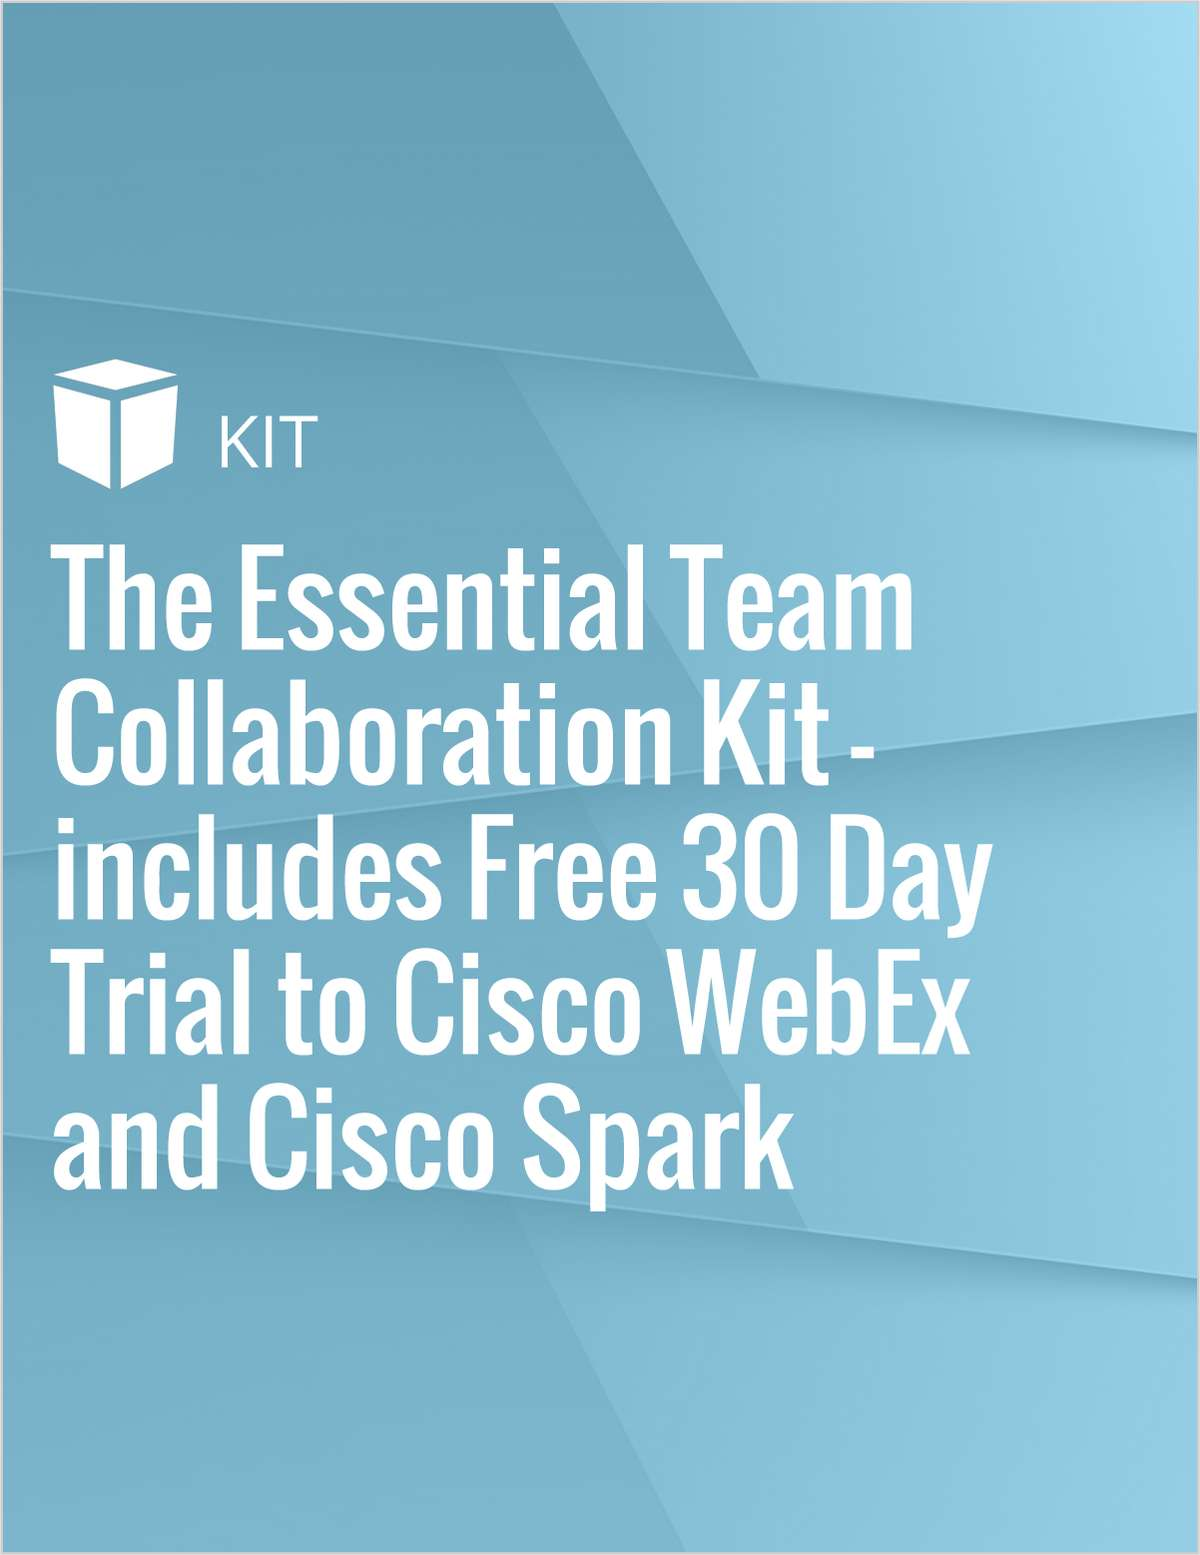 The Essential Team Collaboration Kit - includes Free 30 Day Trial to Cisco WebEx and Cisco Spark